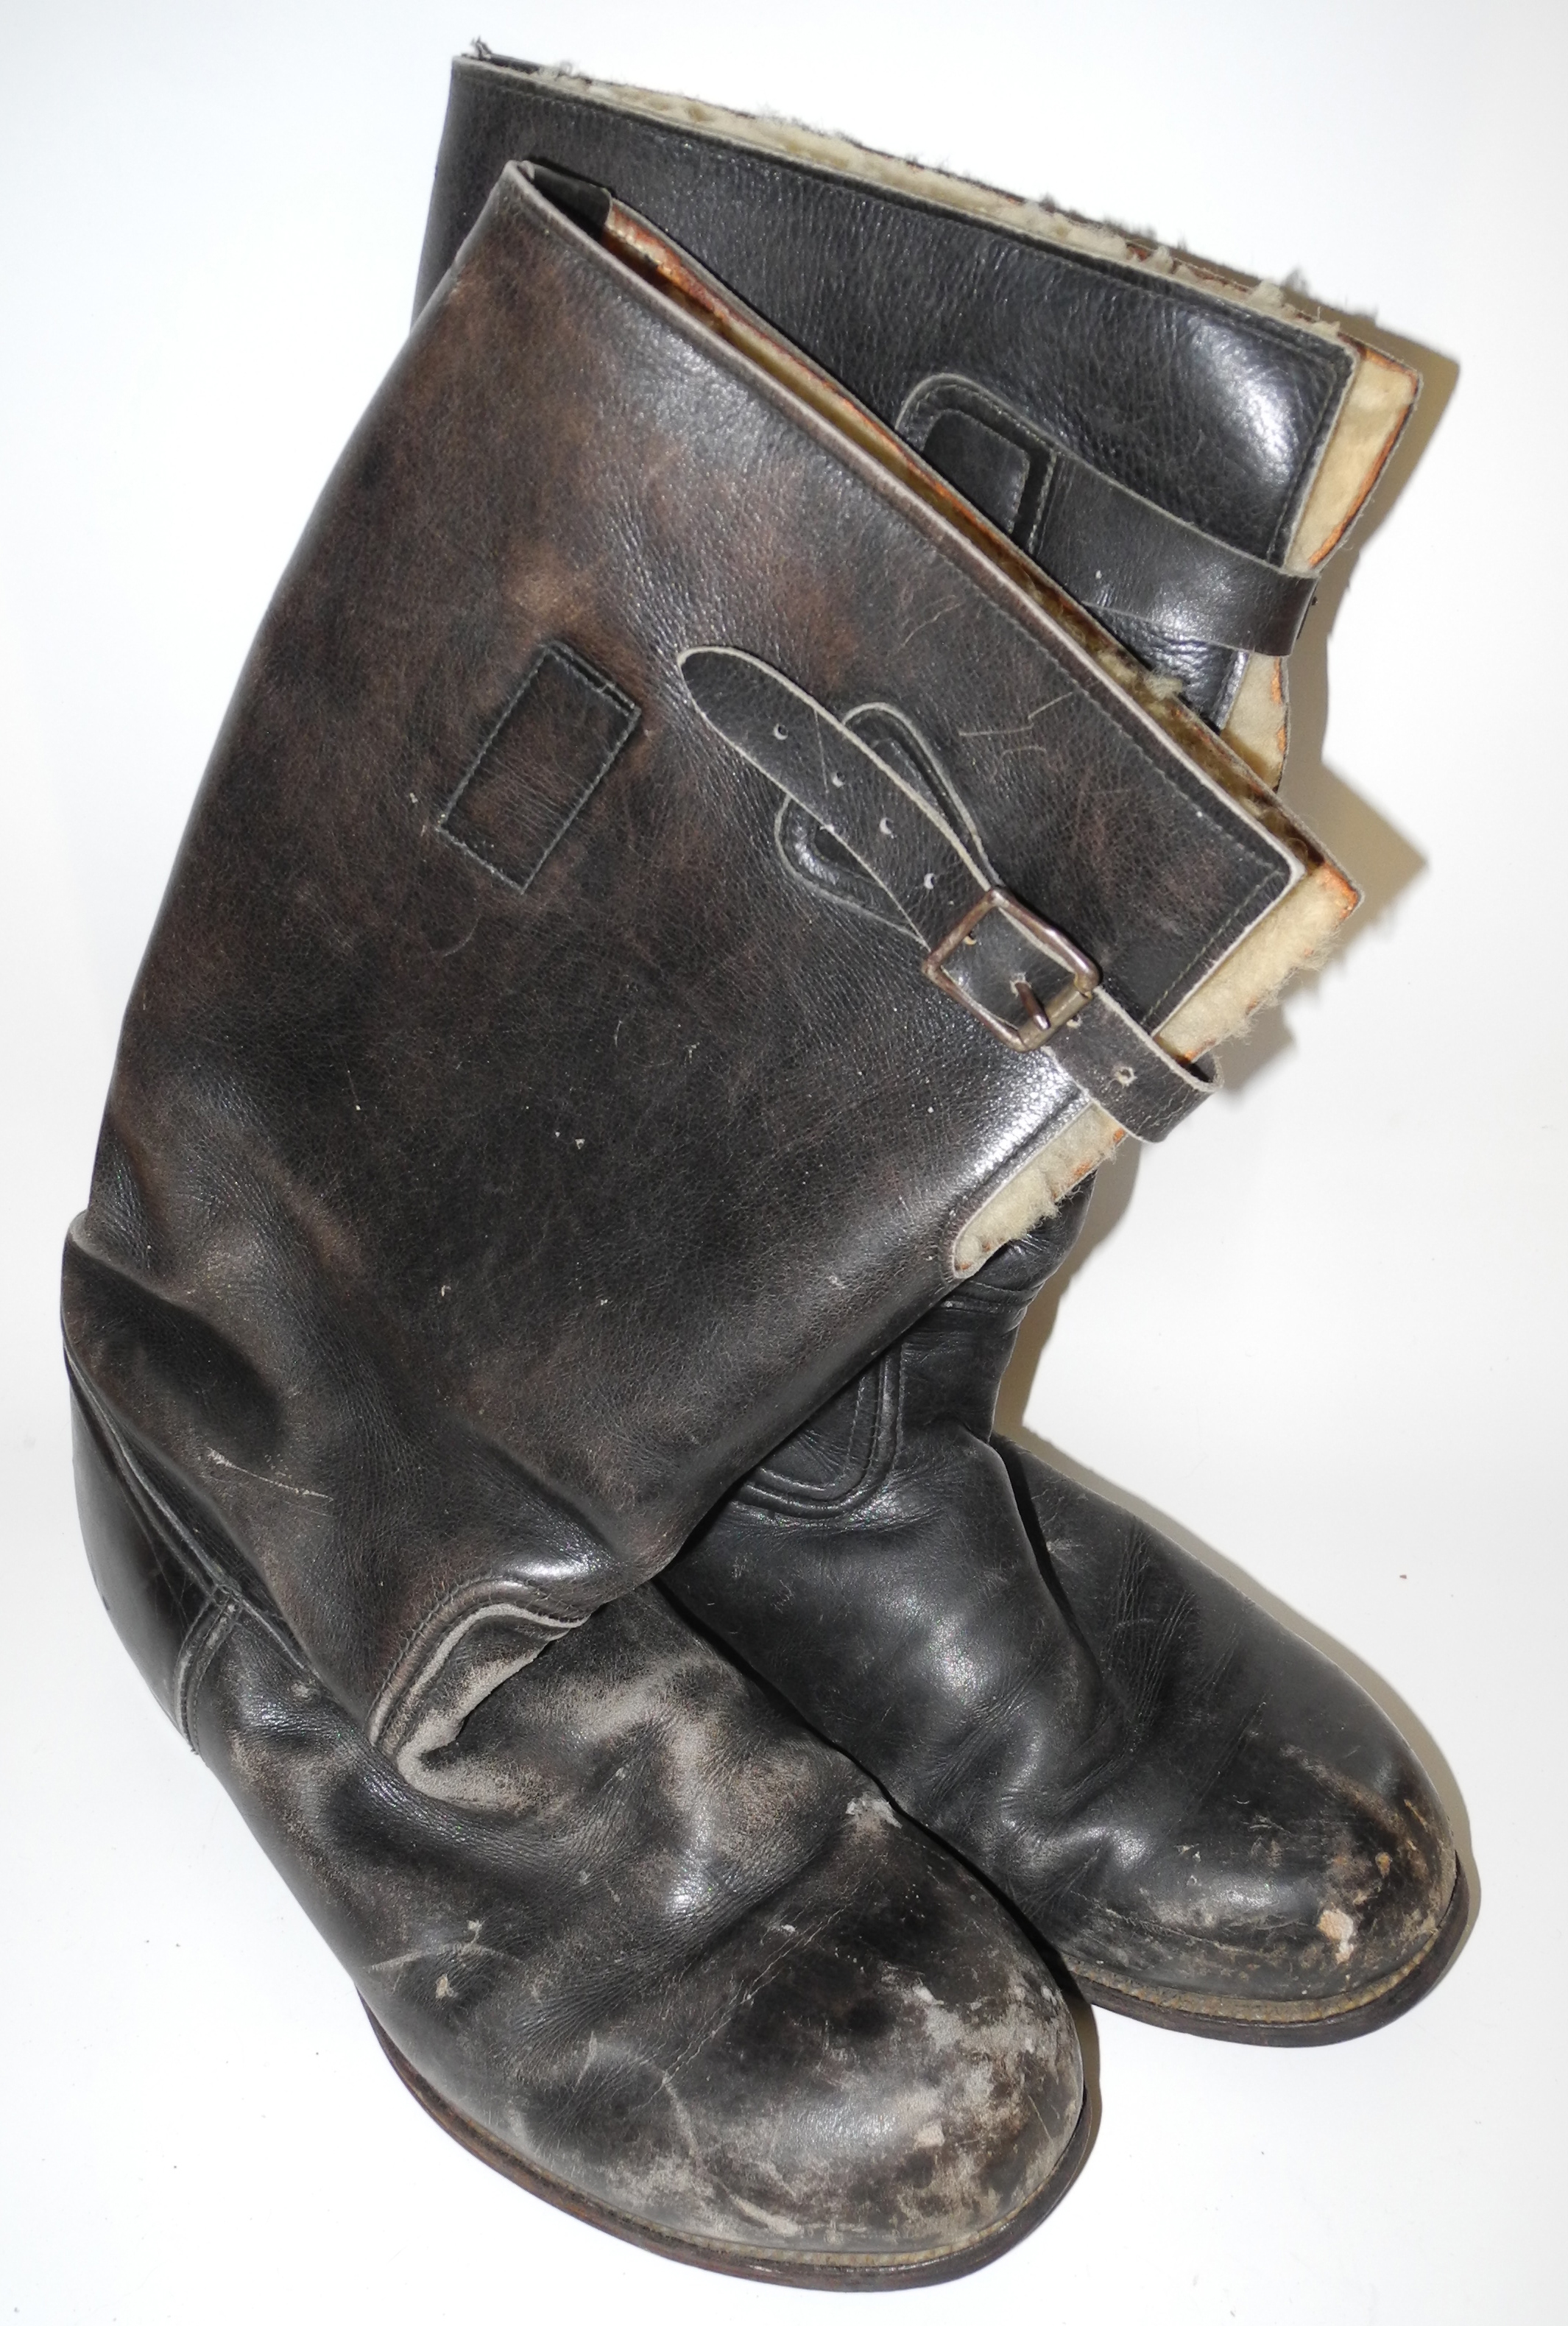 RAAF 1936 pattern flying boots